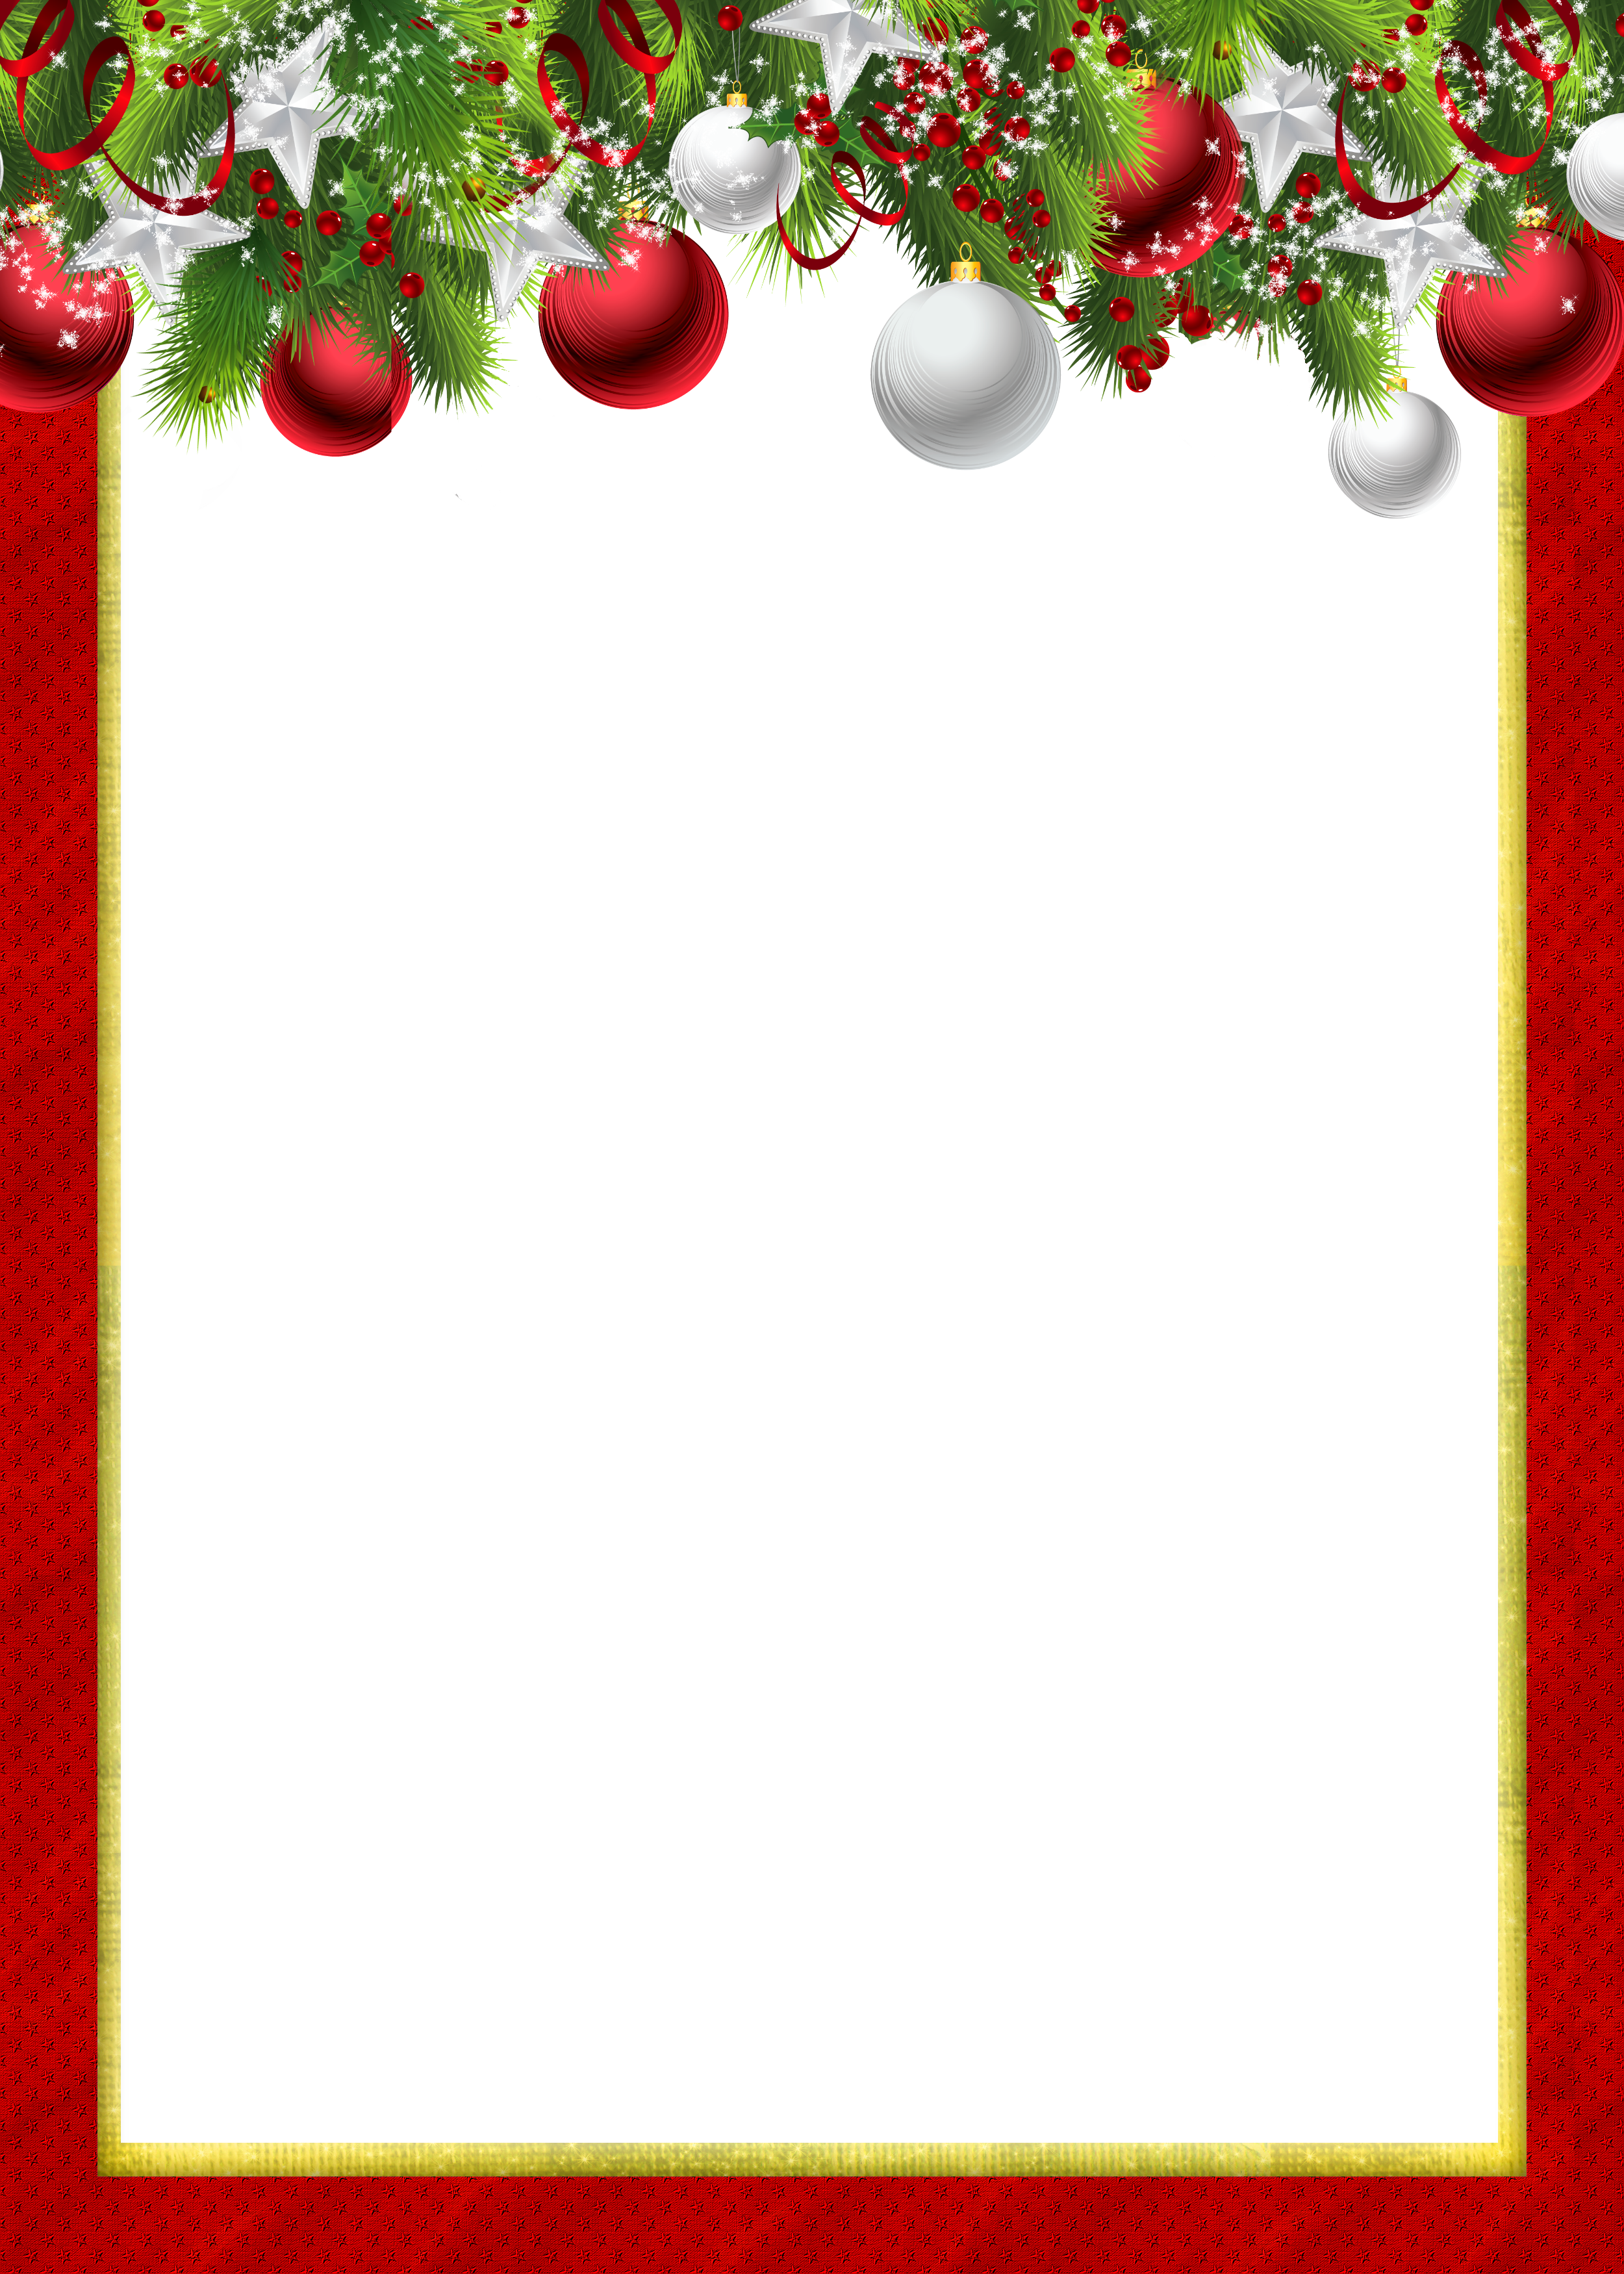 Clipart gallery photograph frame. Red transparent png christmas